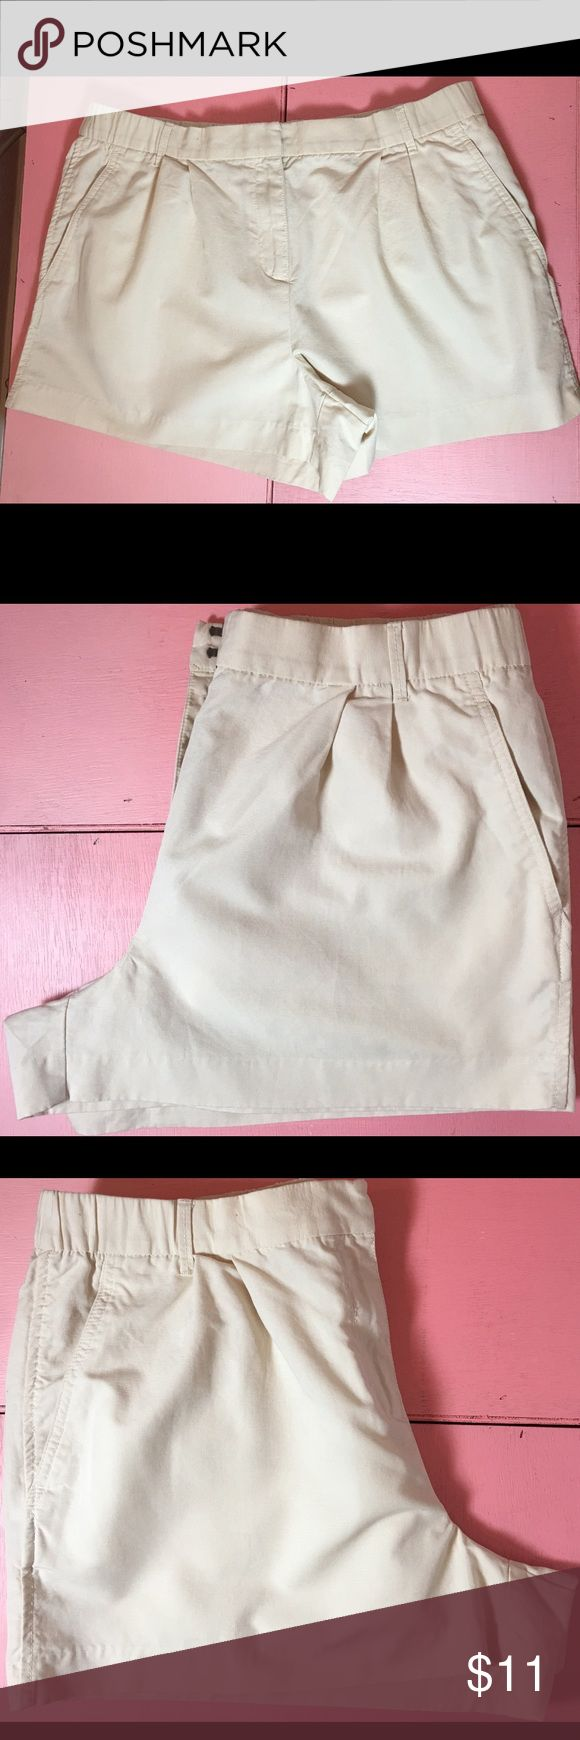 Women's Gap Size 14 Cream Colored Shorts This shorts are gently worn but in excellent condition!  Great to dress up with a nice silk top or dress down with a t-shirt.  No flaws. GAP Shorts